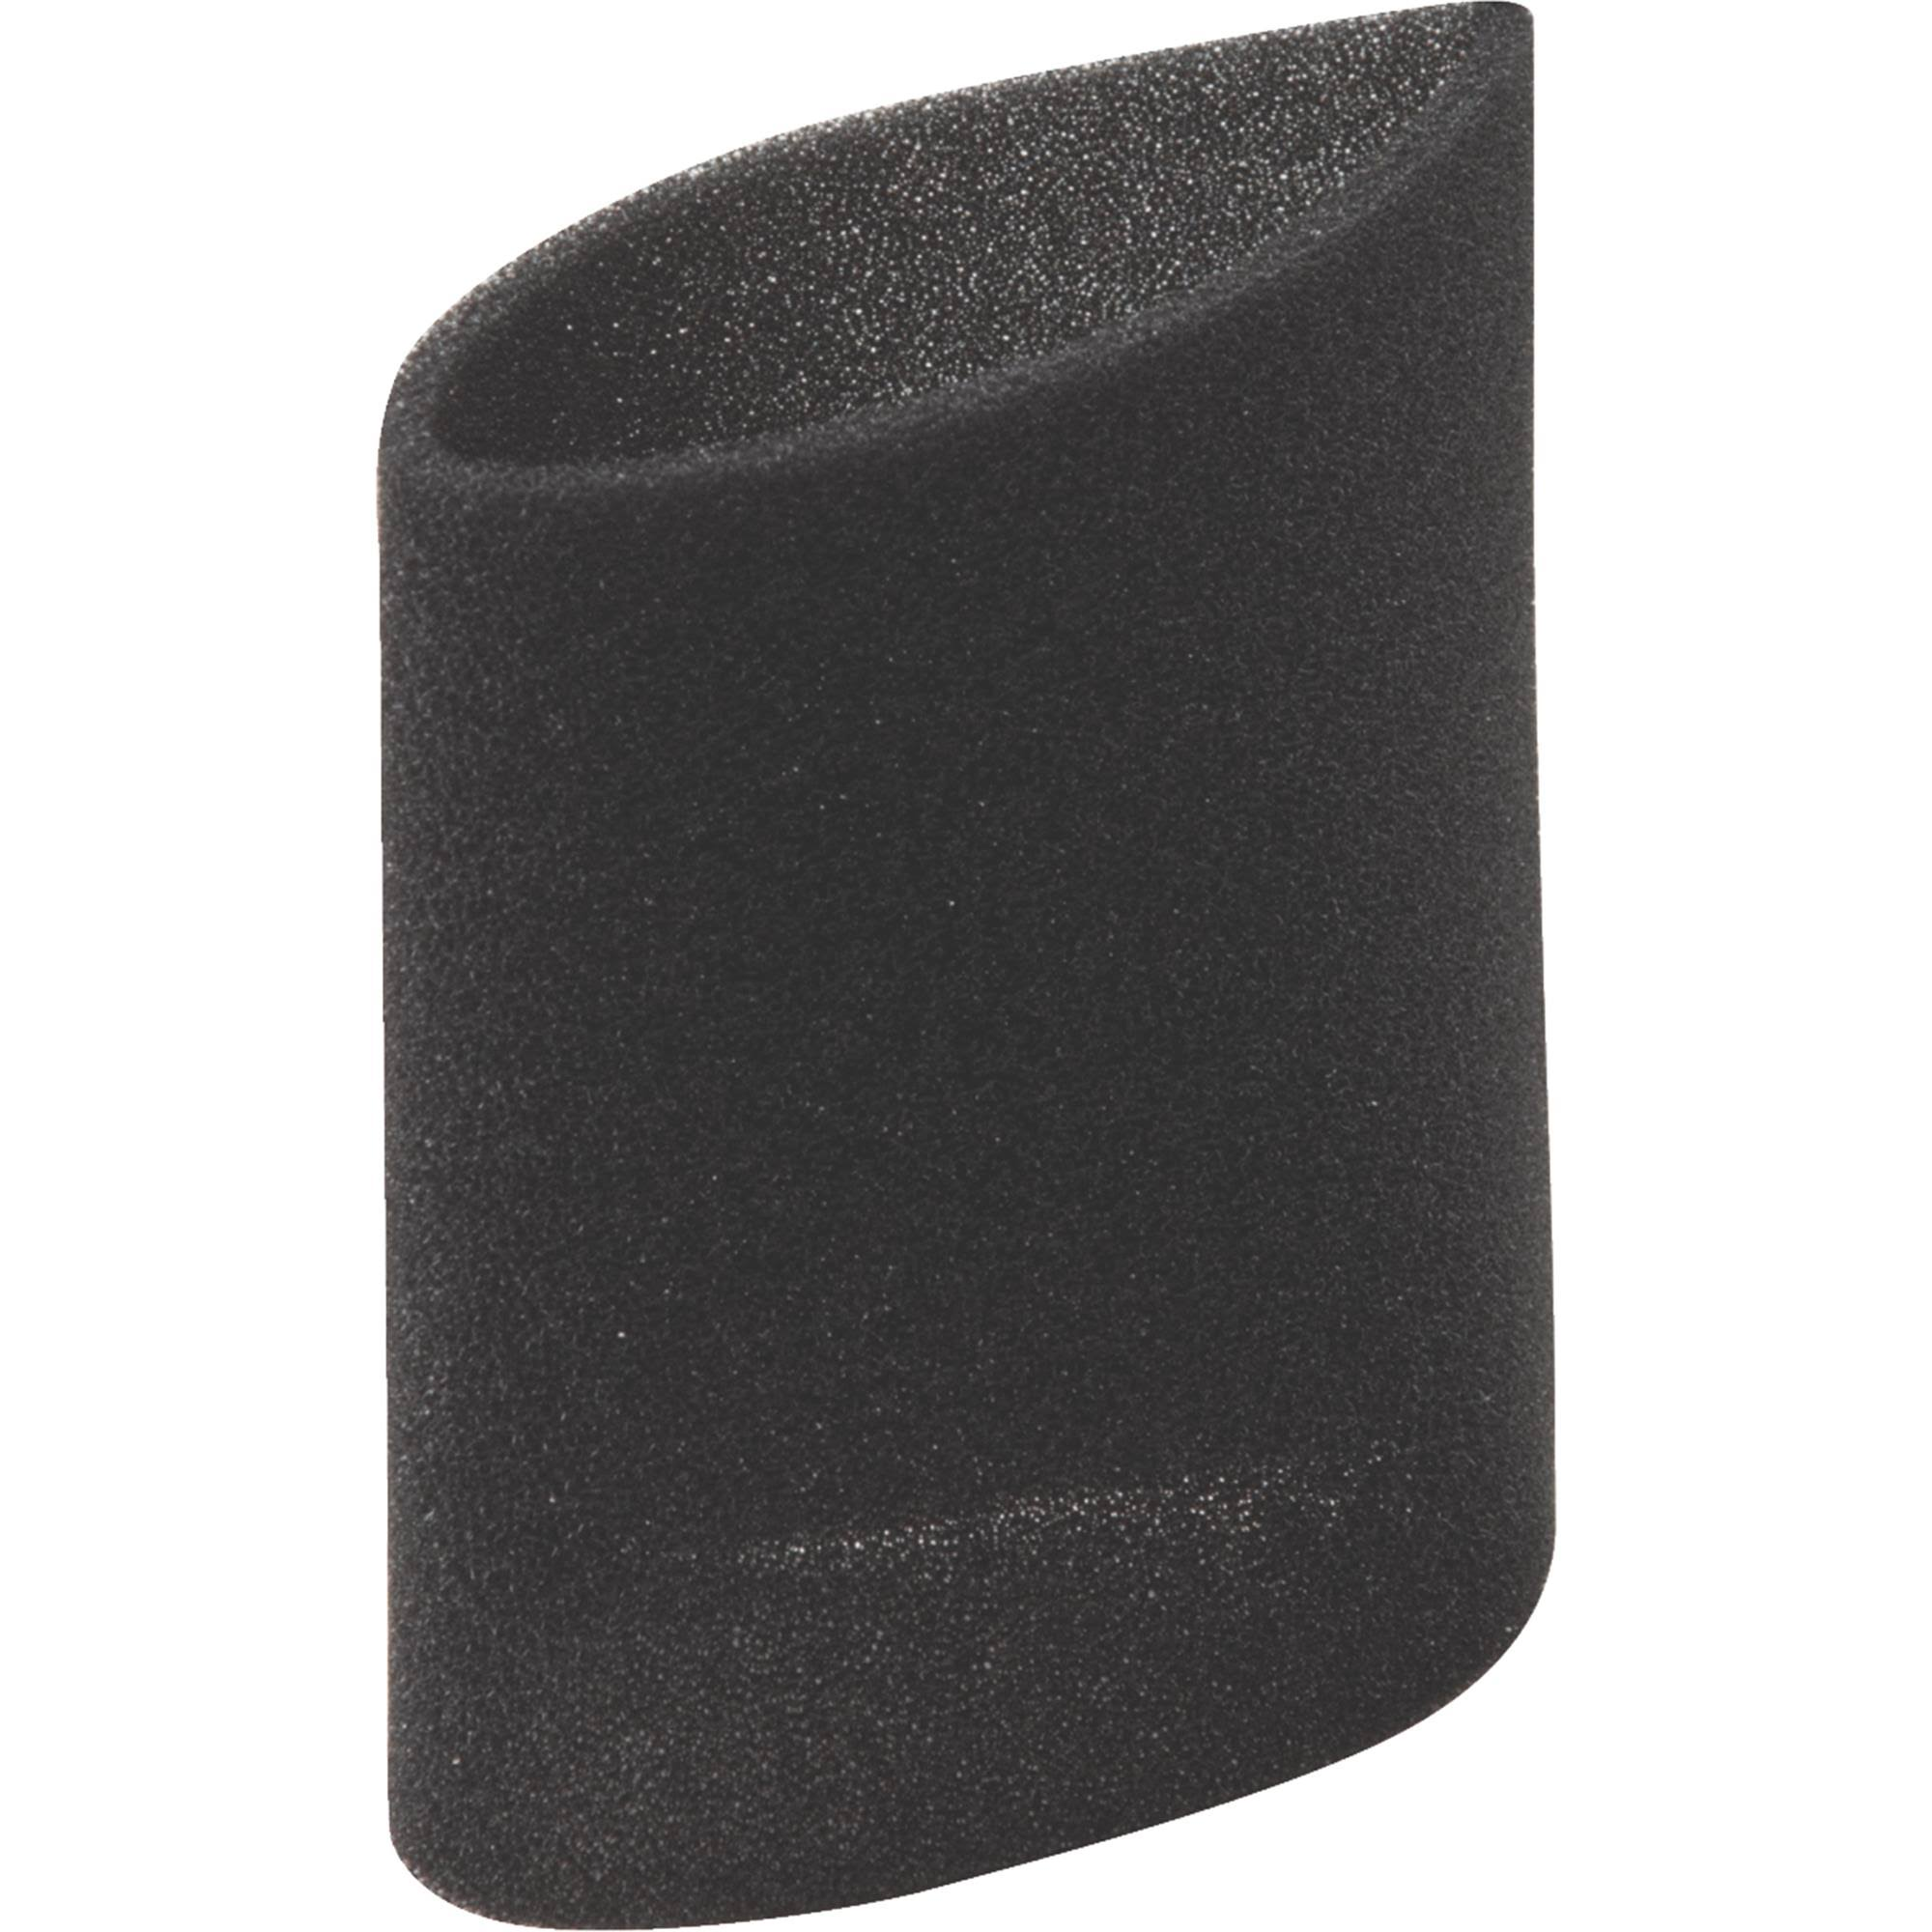 Channellock Foam Vacuum Filter